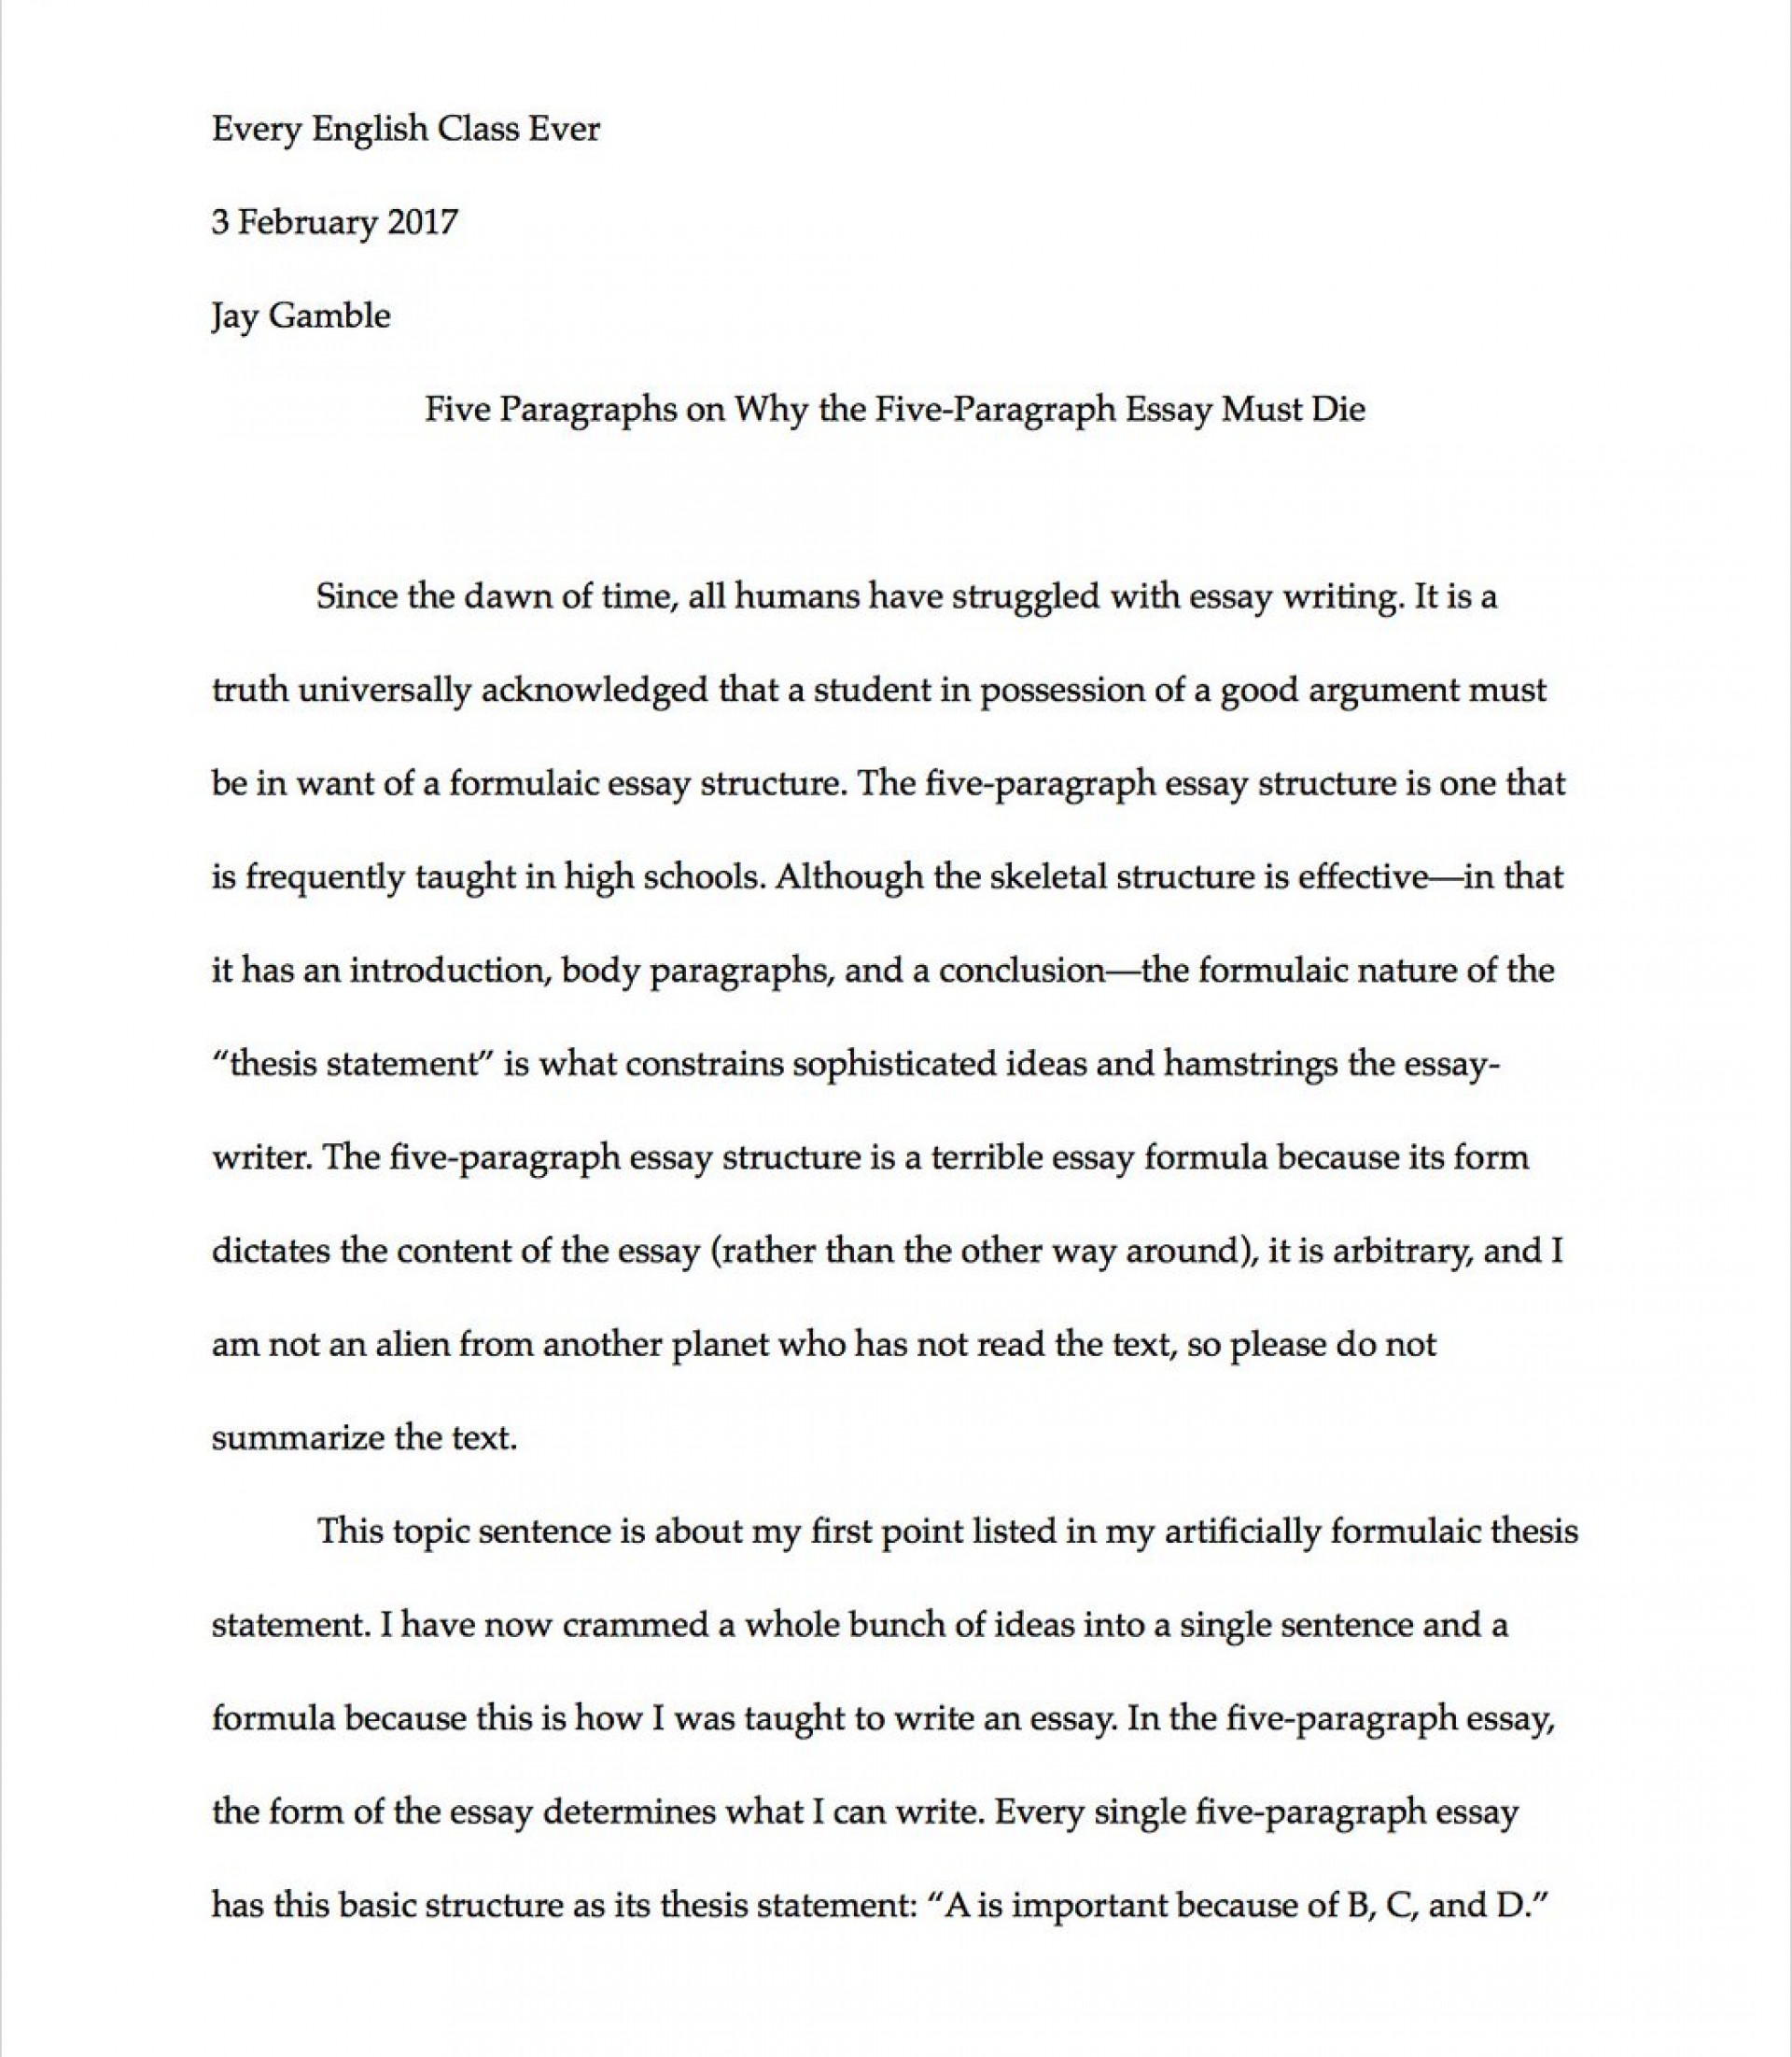 007 Paragraph Essay C3xanfgumaav1io Exceptional 3 Example Elementary Outline 1920